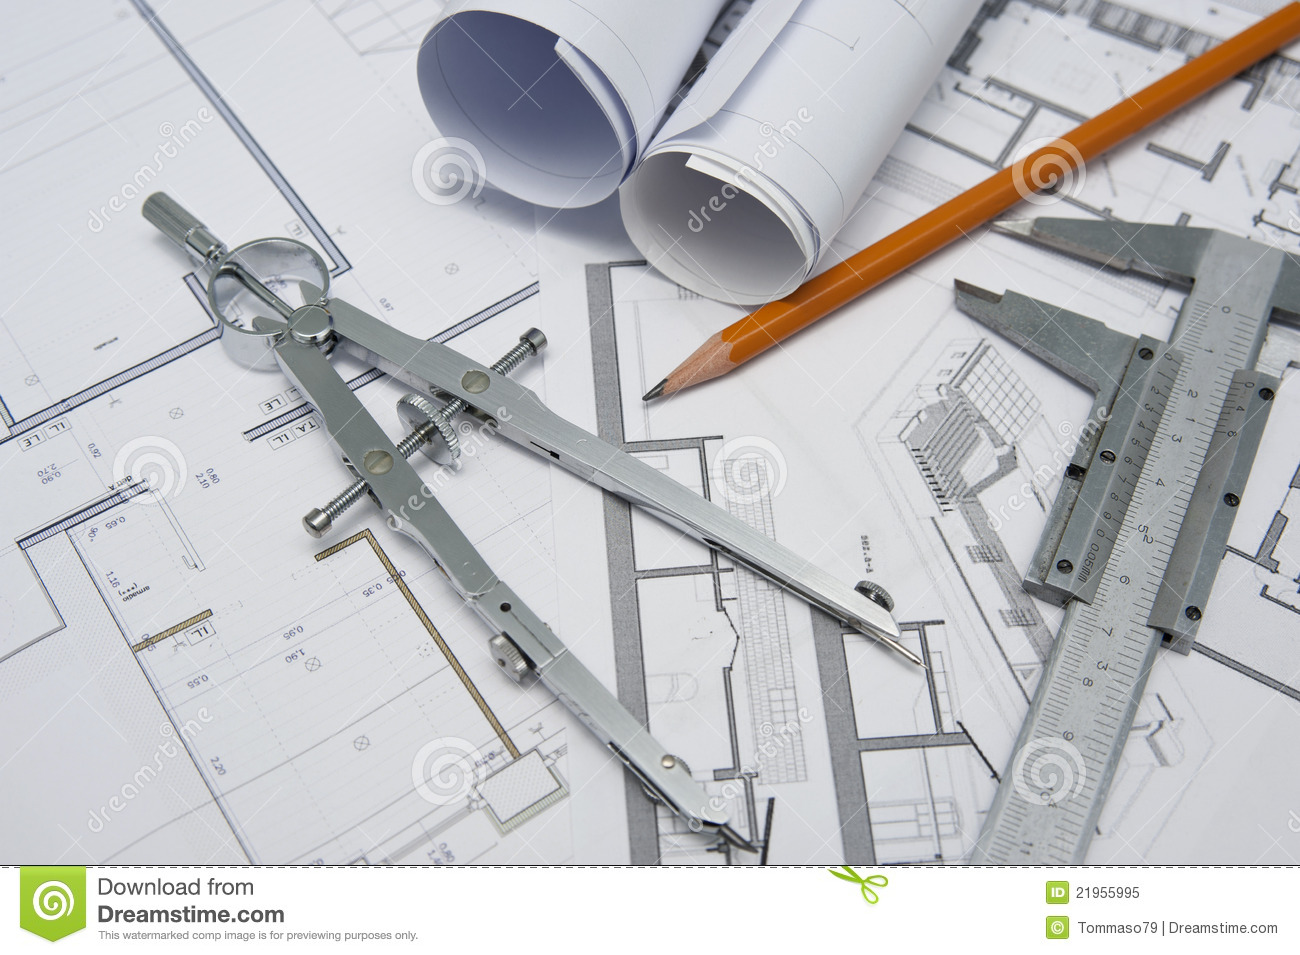 Architect tools royalty free stock photo image 21955995 for Online architecture design tool